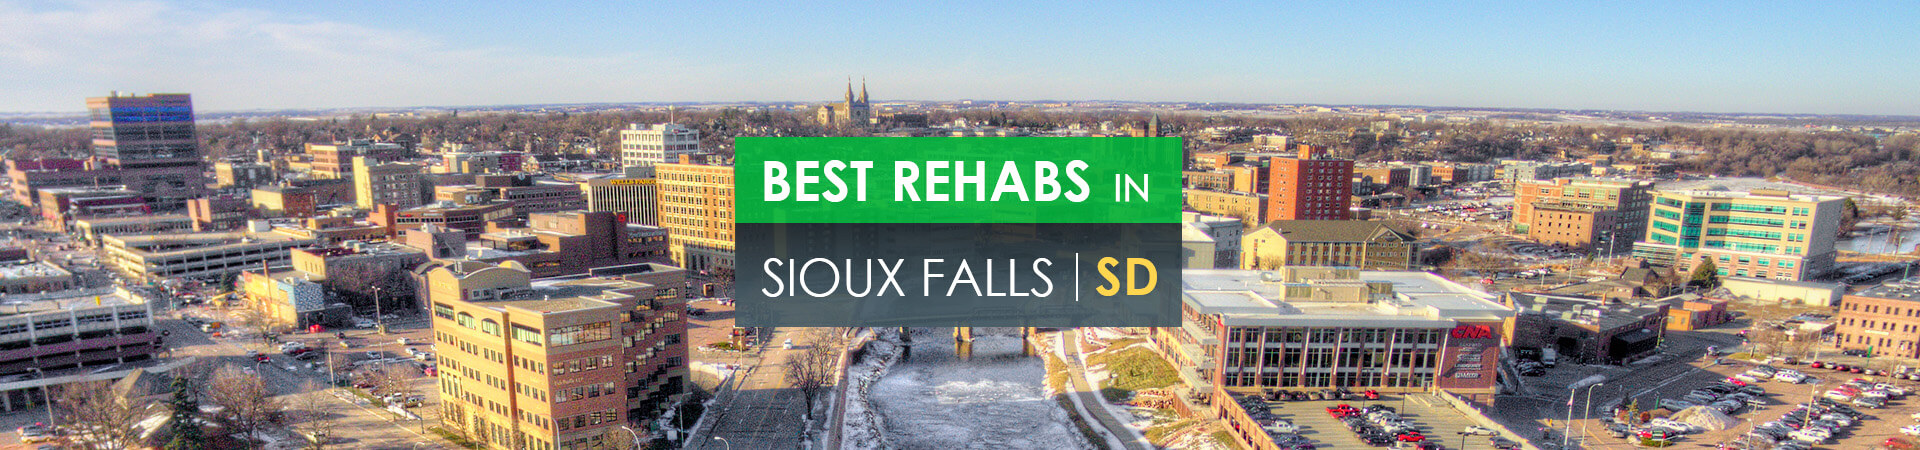 Best rehabs in Sioux Falls, SD